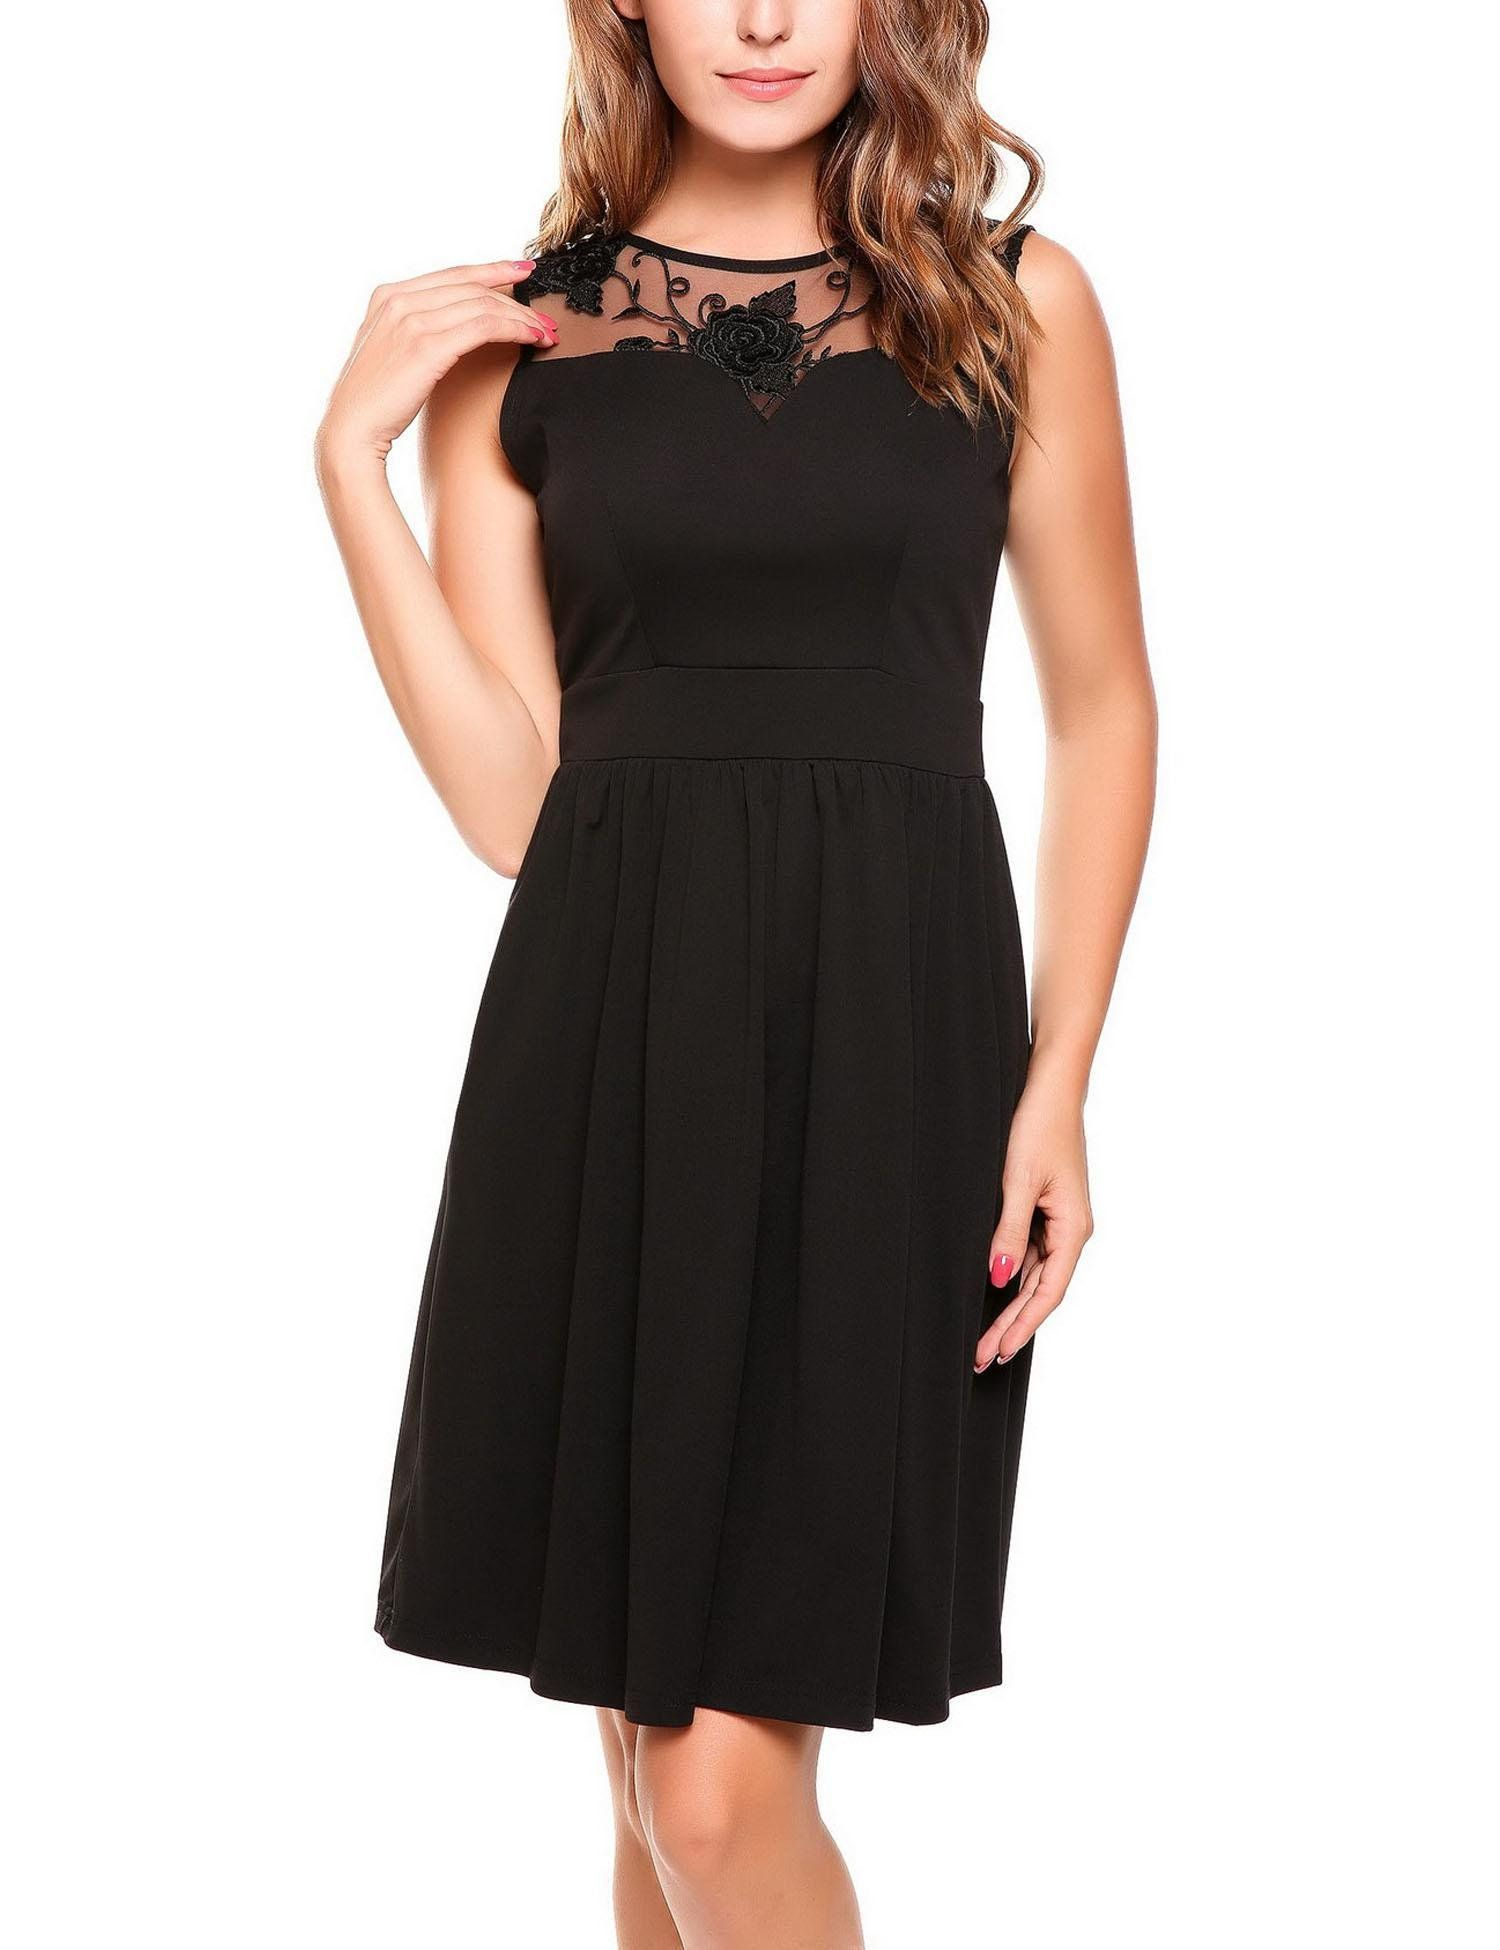 2f2276b88d47 BEAUTYTALK Womens Floral Lace Patchwork Sleeveless Swing Cocktail ALine  Dress Black Large -- More info could be found at the image url.